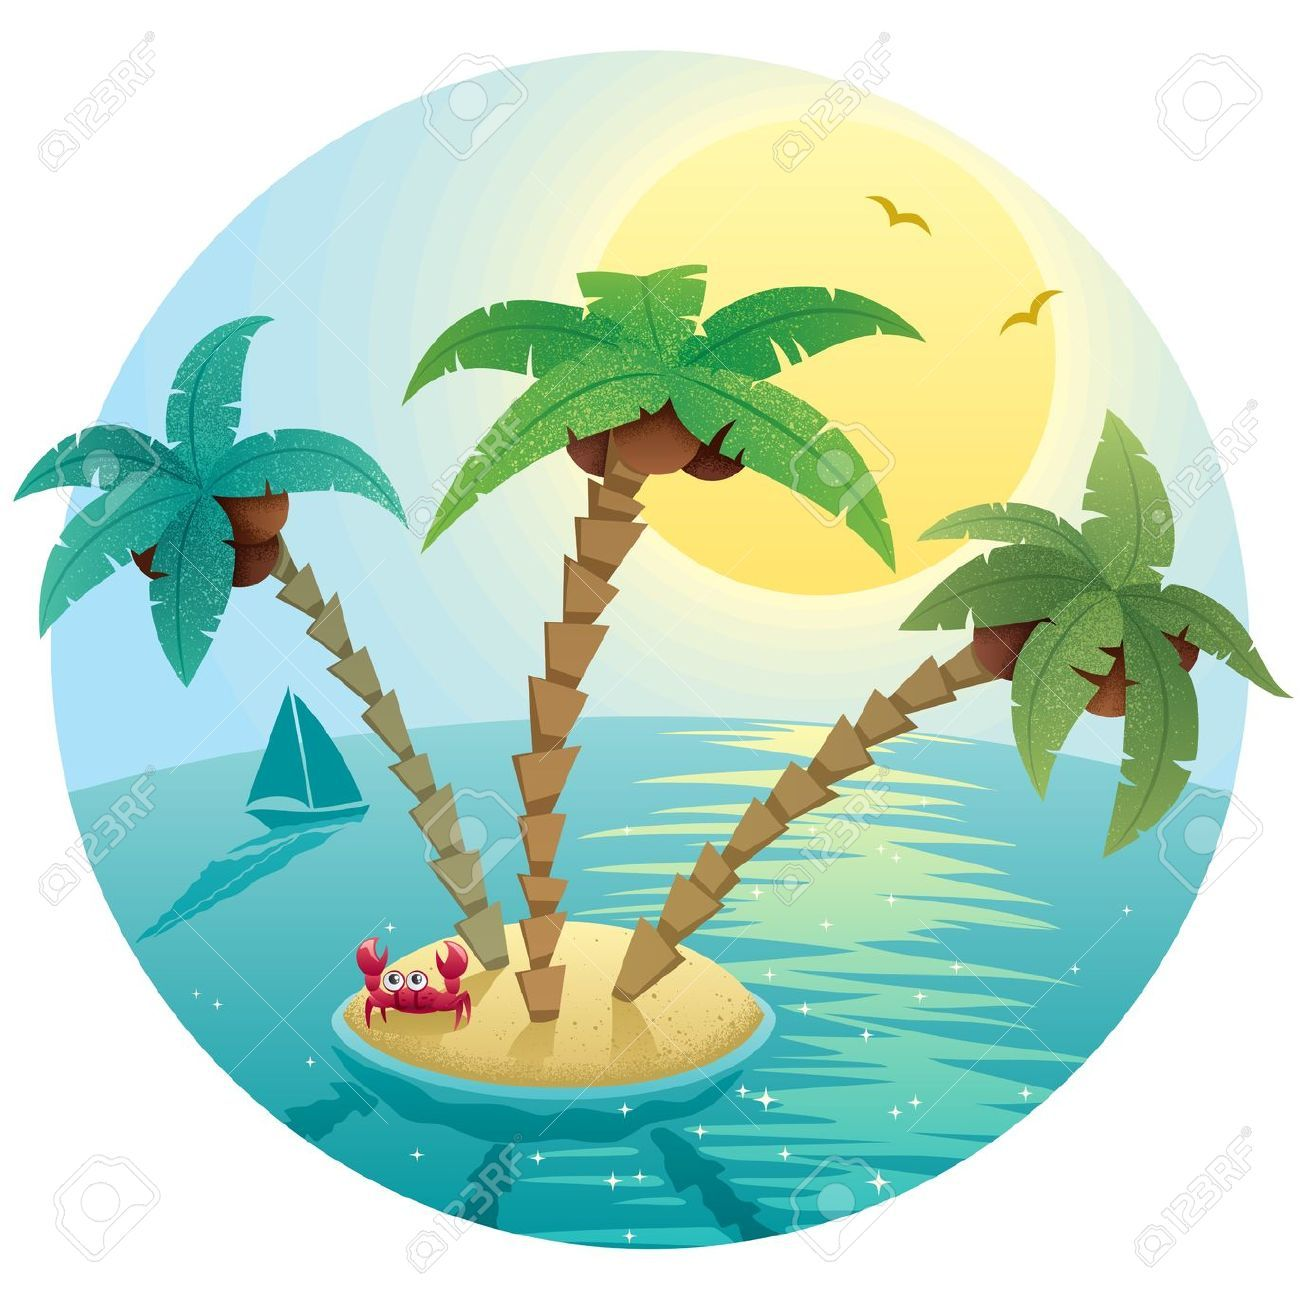 Tropical island images free clipart png transparent library landscape small tropical island stock vector cartoon palm ... png transparent library